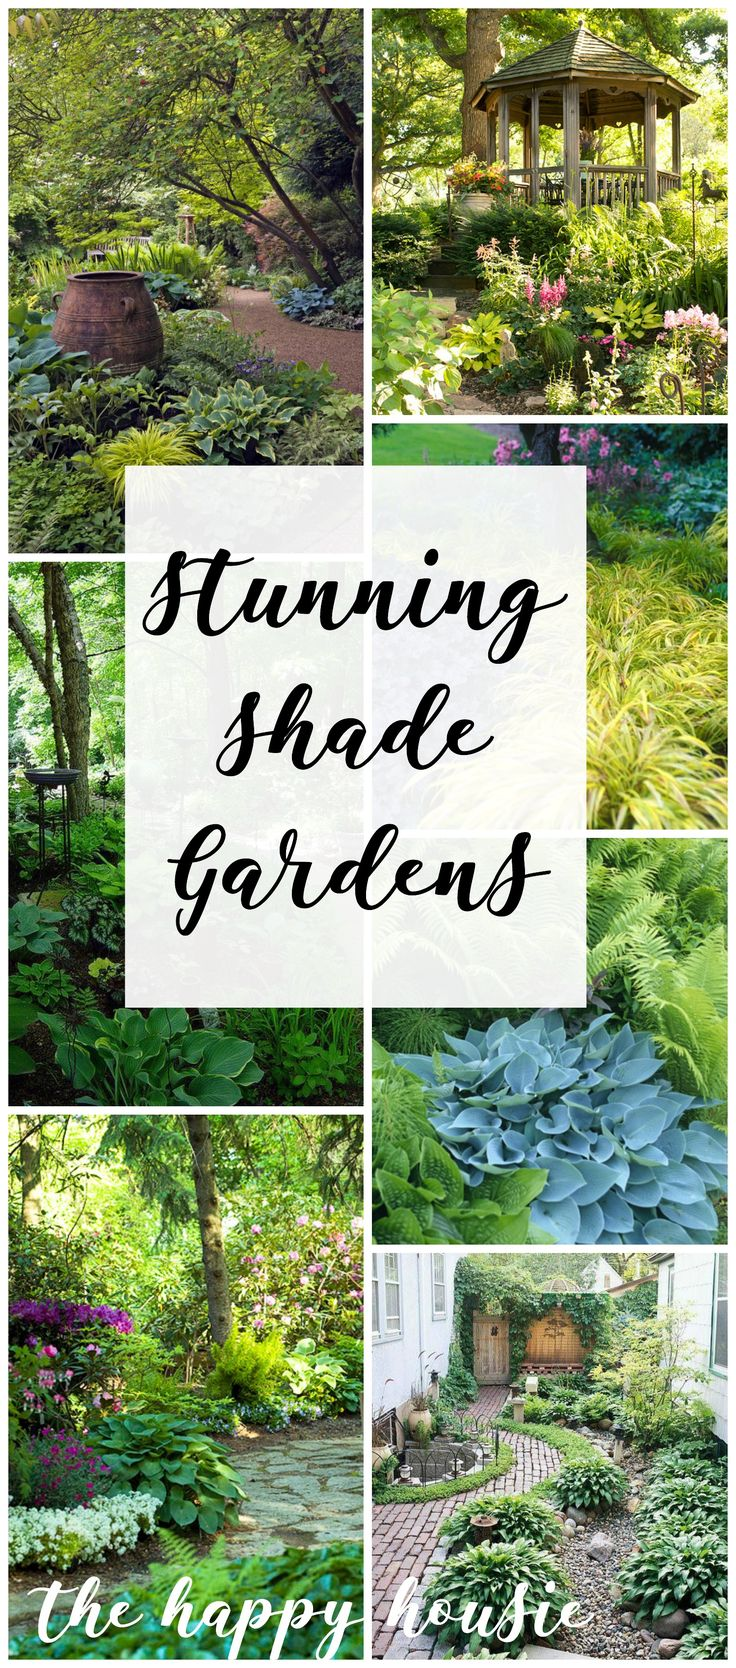 Stunning Shade Gardens - The Happy Housie